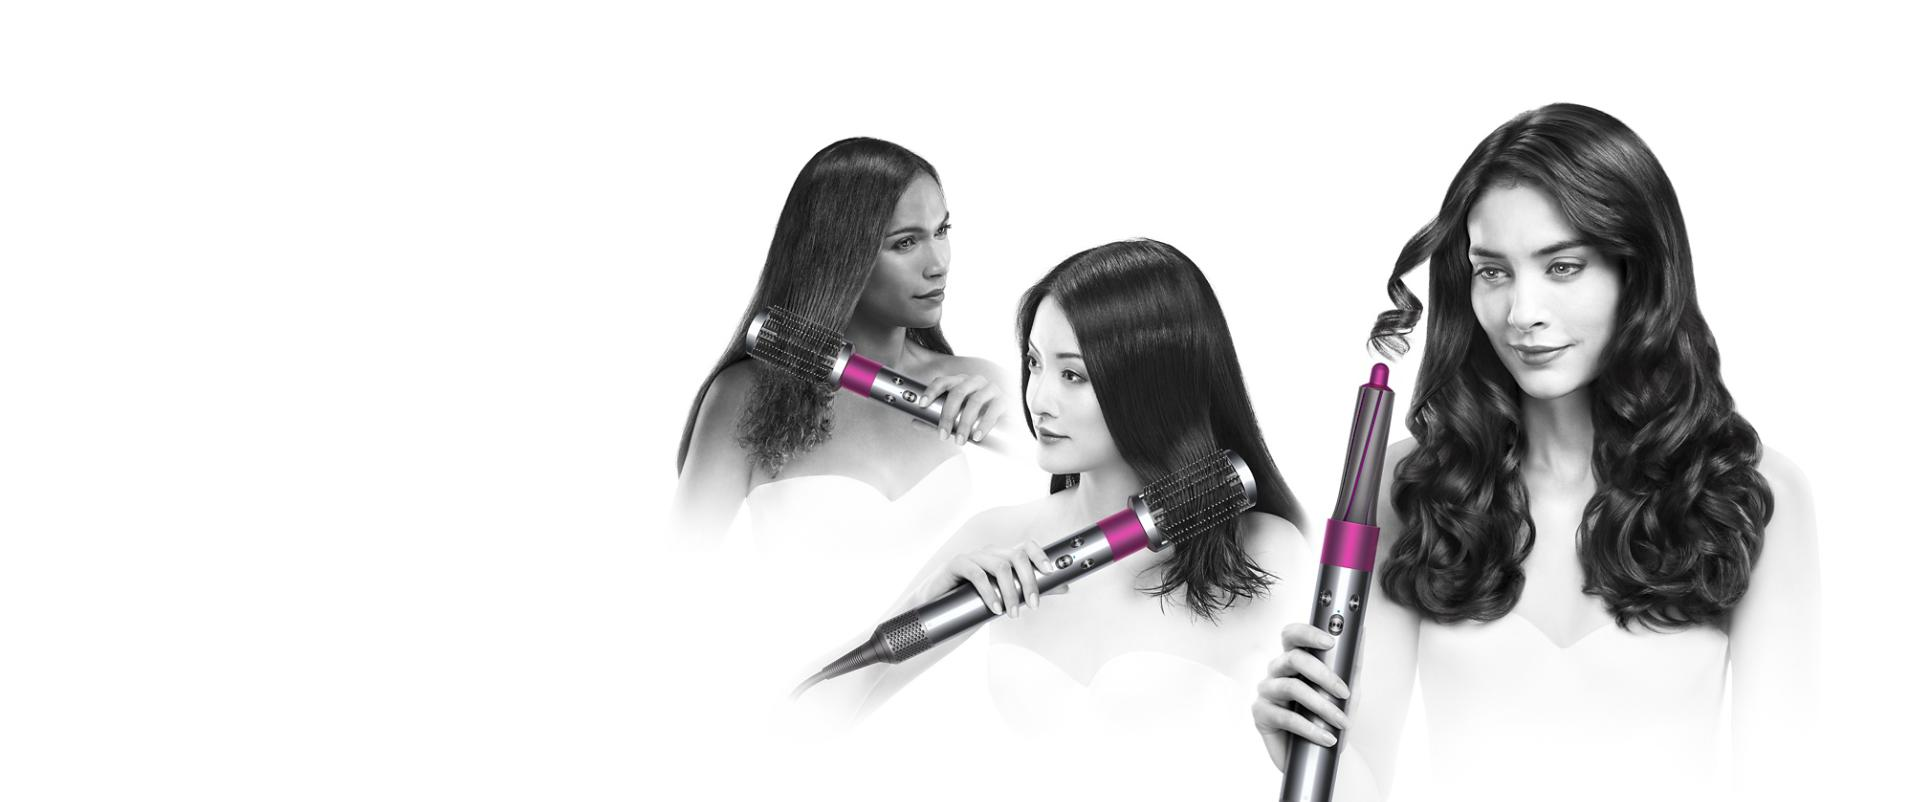 Three models using the dyson airwrap styler with different attachments